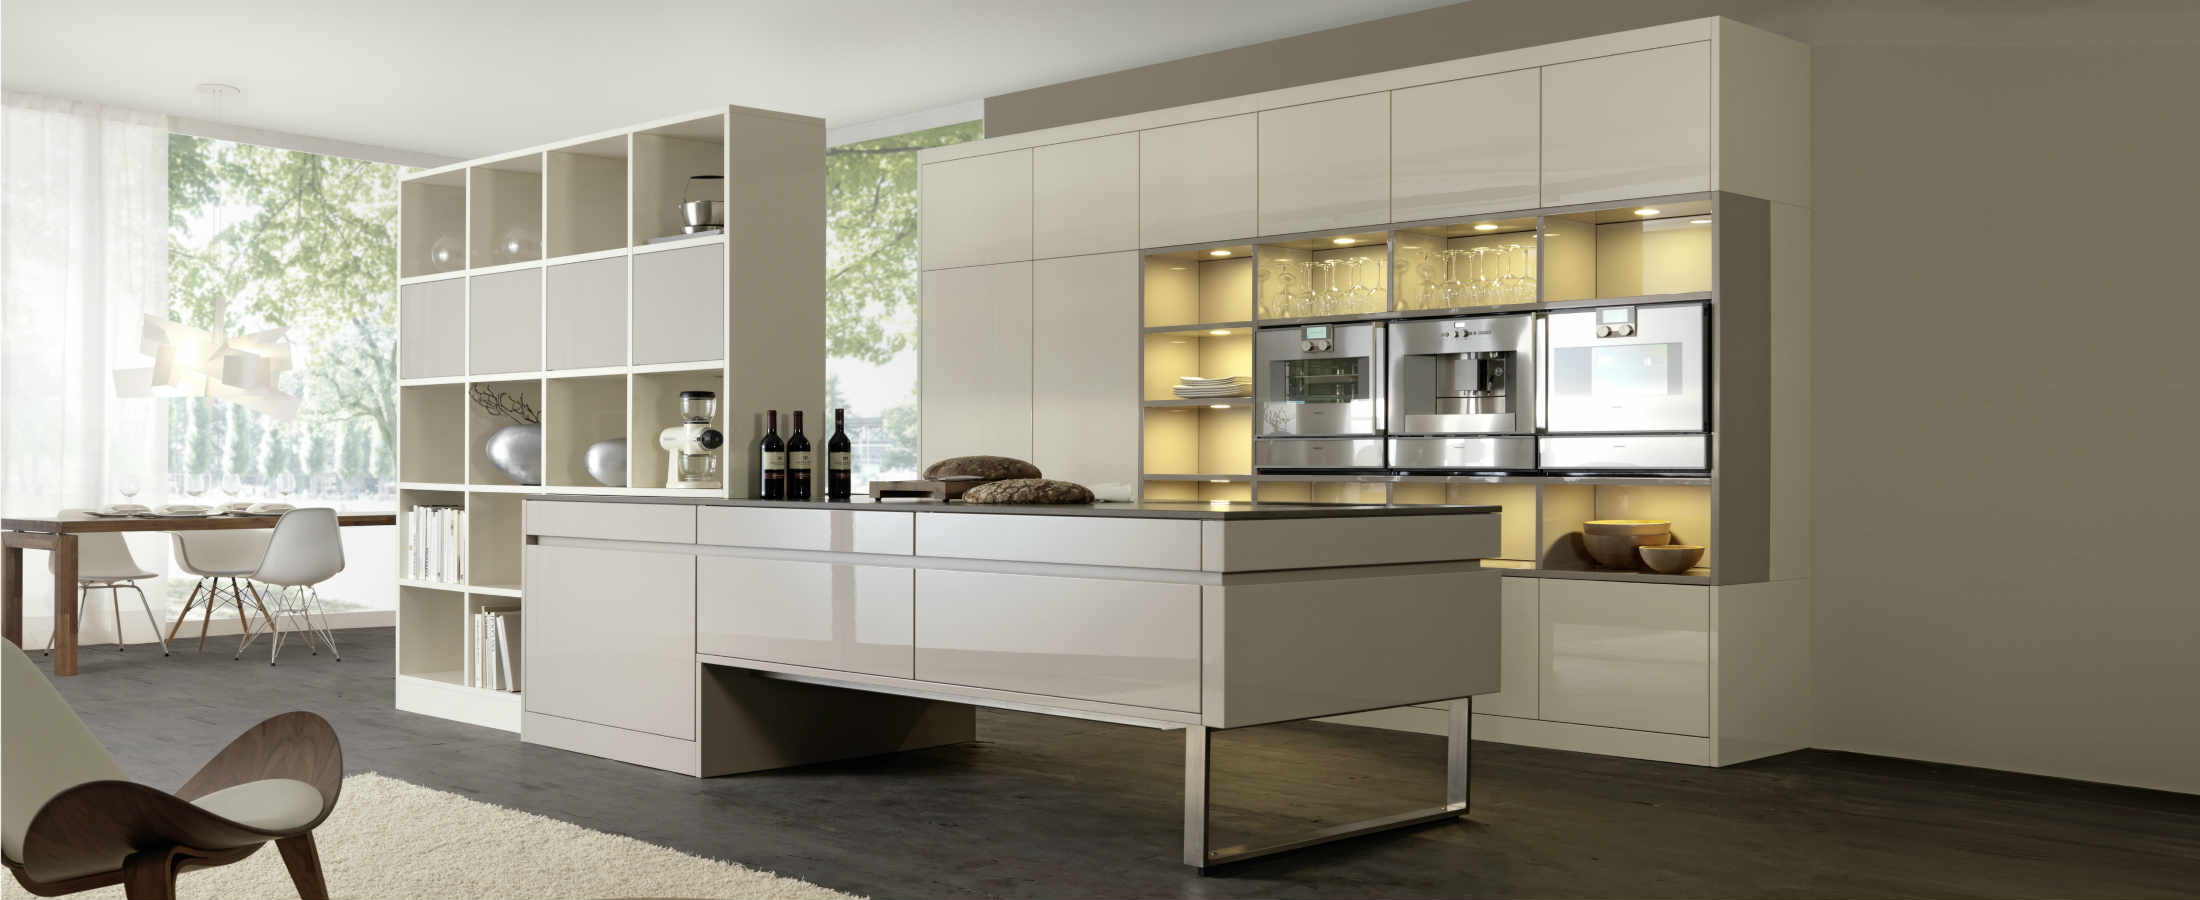 Muebles Echeverria Of Holik Group Cocinas